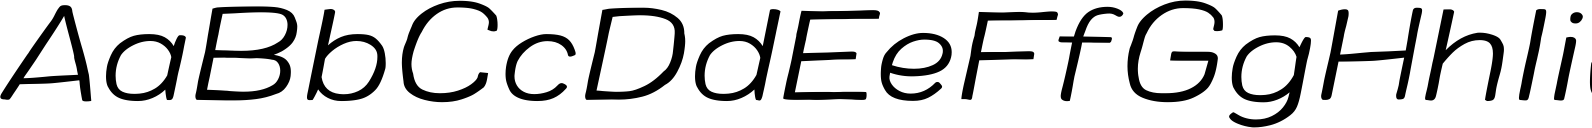 Colby Wide Light Italic Font